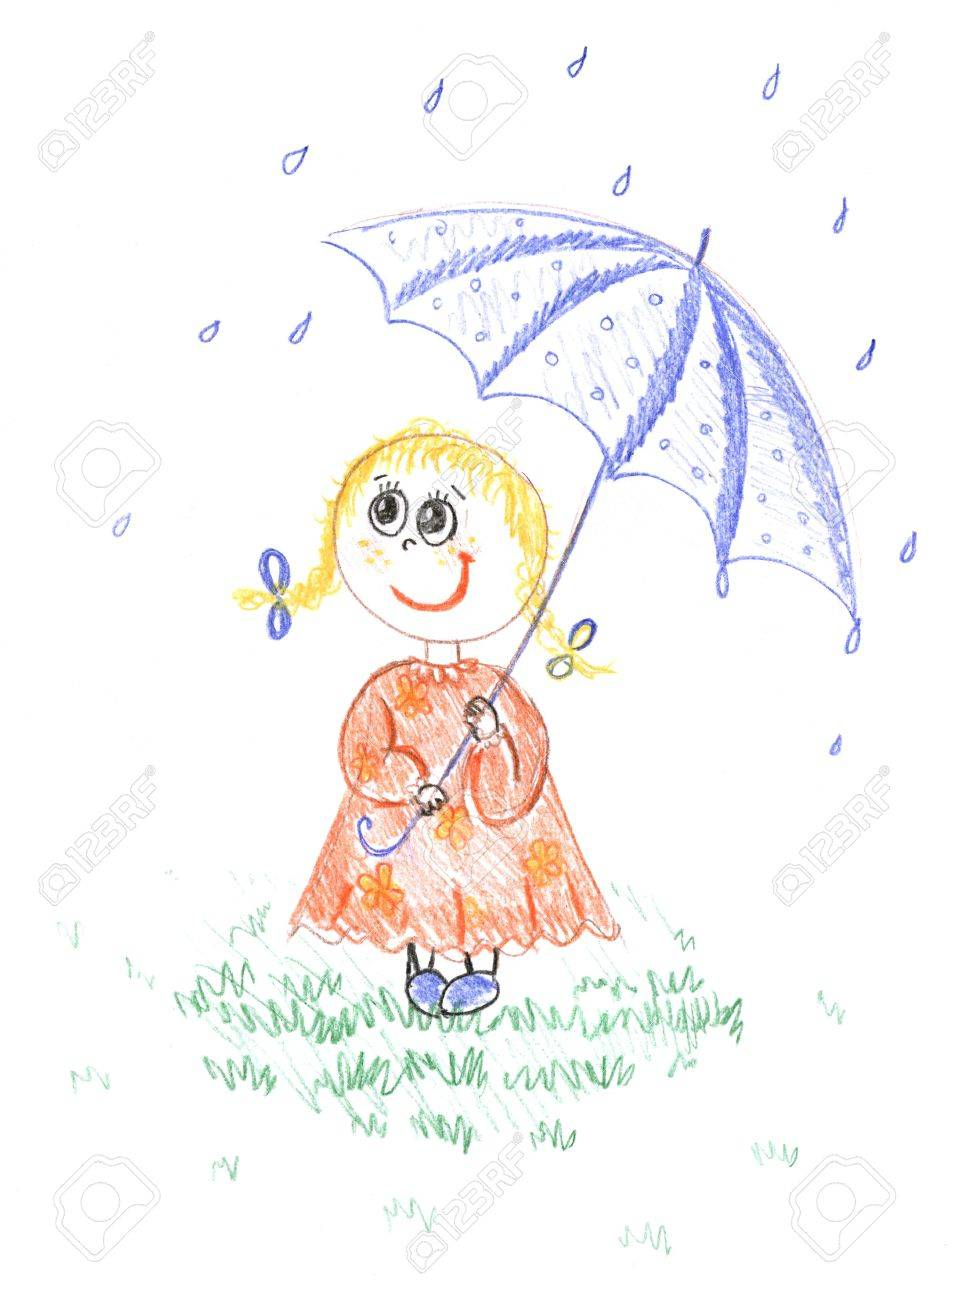 Girl with umbrella kids colored pencil drawing stock photo 6364187